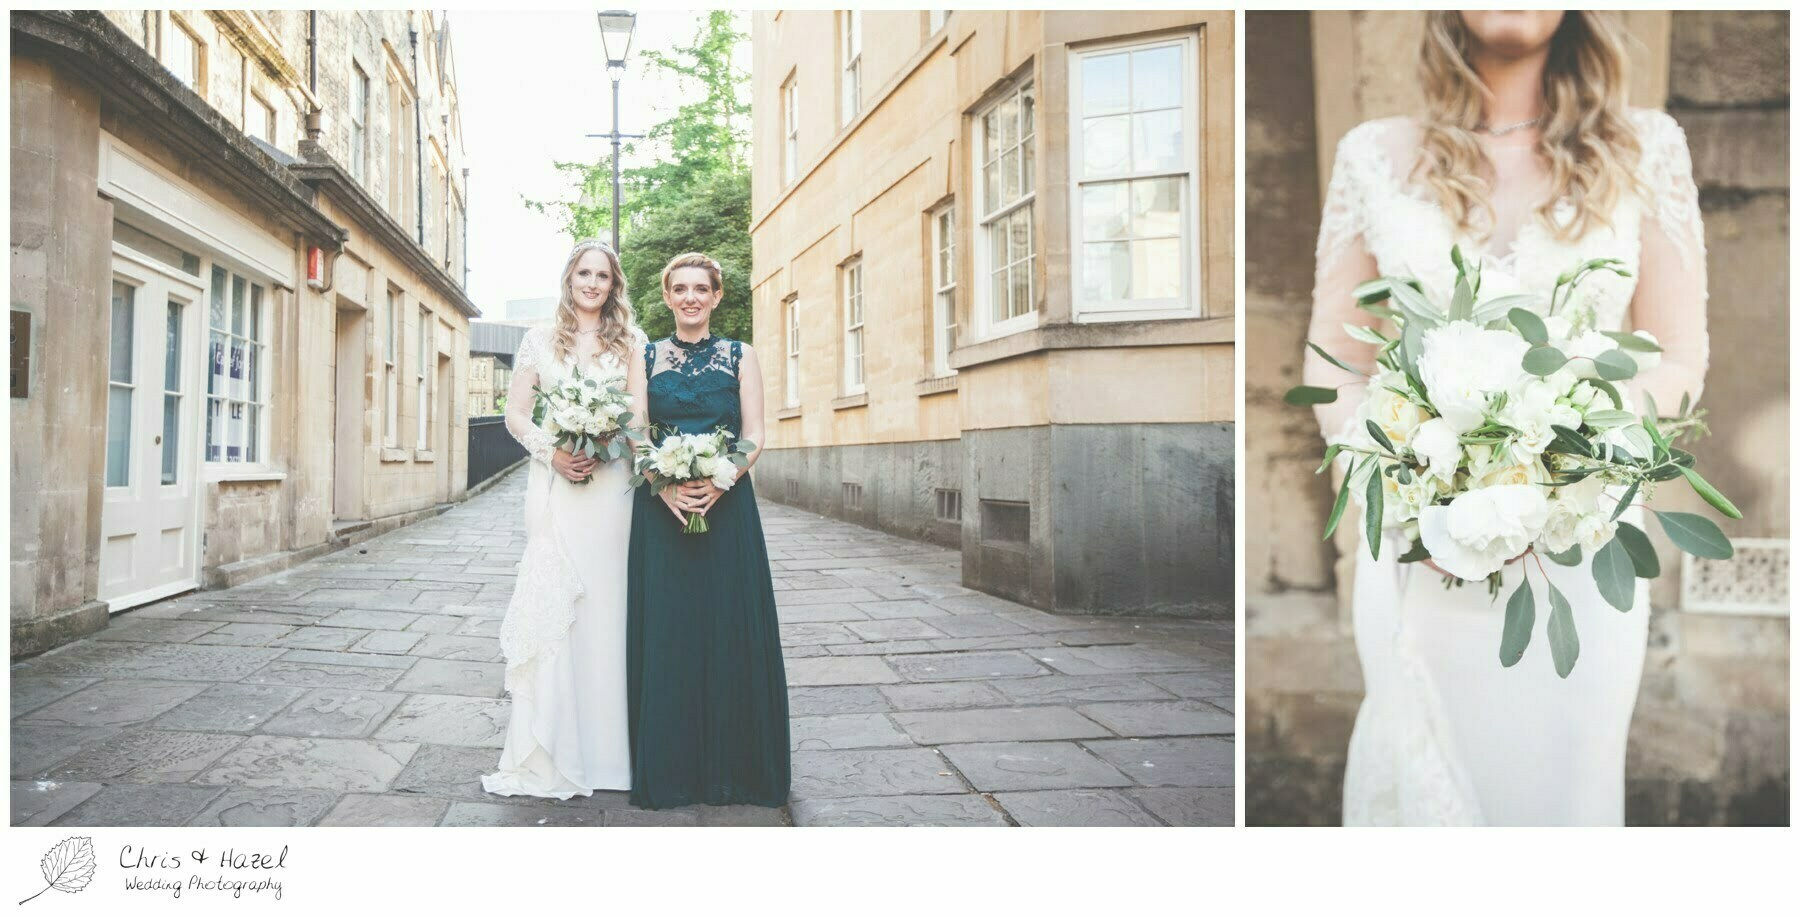 Bride and maid of honour bridesmaid, The Roman Baths Wedding Photography, Roman Baths Wedding Photographer, Wedding in Bath, Bath Wedding Day, documentary wedding photography, Chris and Hazel Wedding Photography Bath, Andy Frost Sian Upson